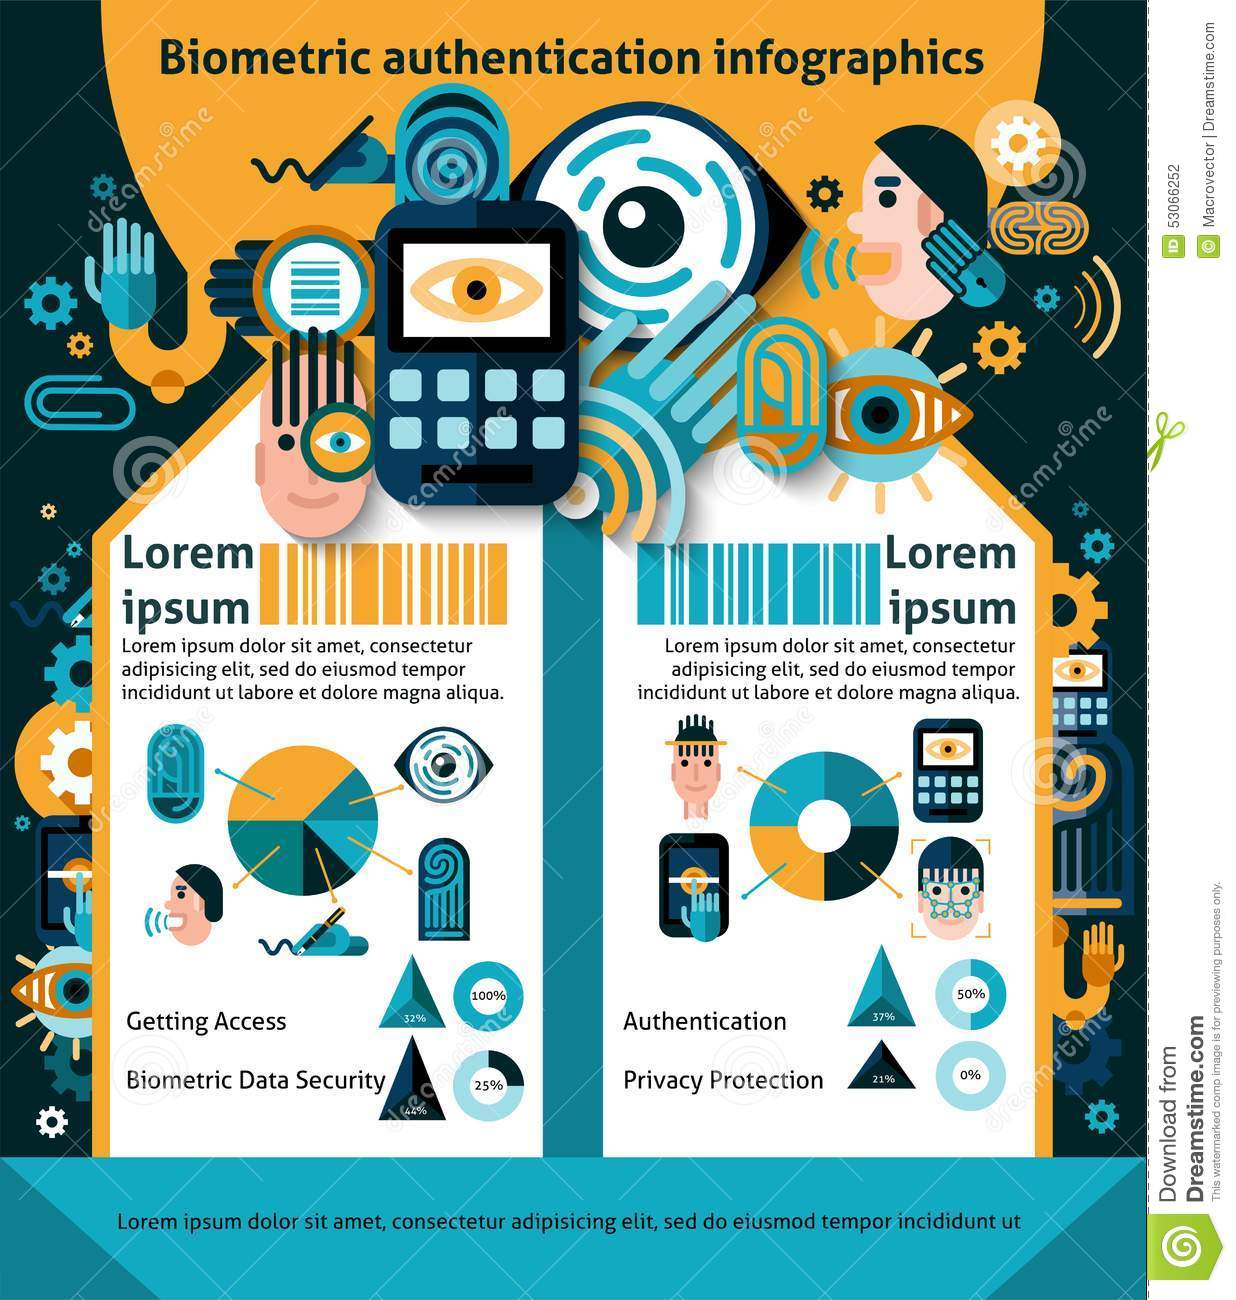 Authentification biométrique Infographics